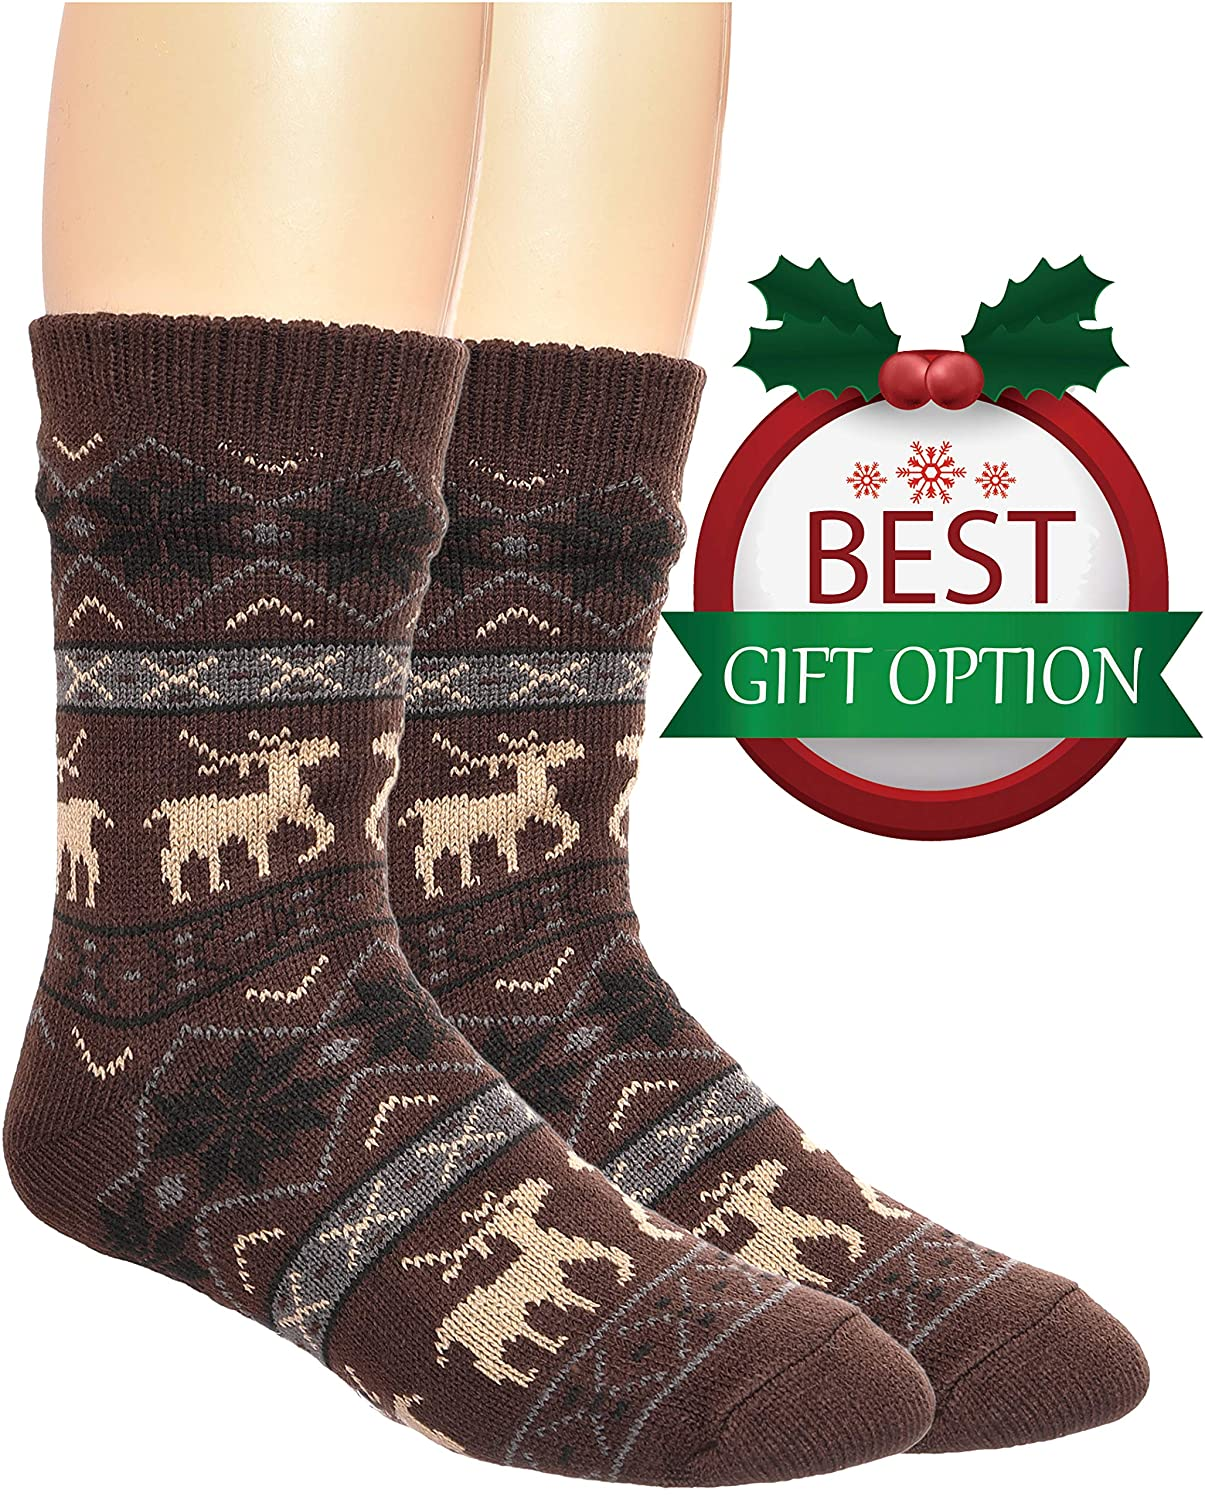 Mens Fuzzy Slipper Socks Warm Thick Heavy Fleece lined Christmas Stockings Fluffy Winter Socks With Grippers